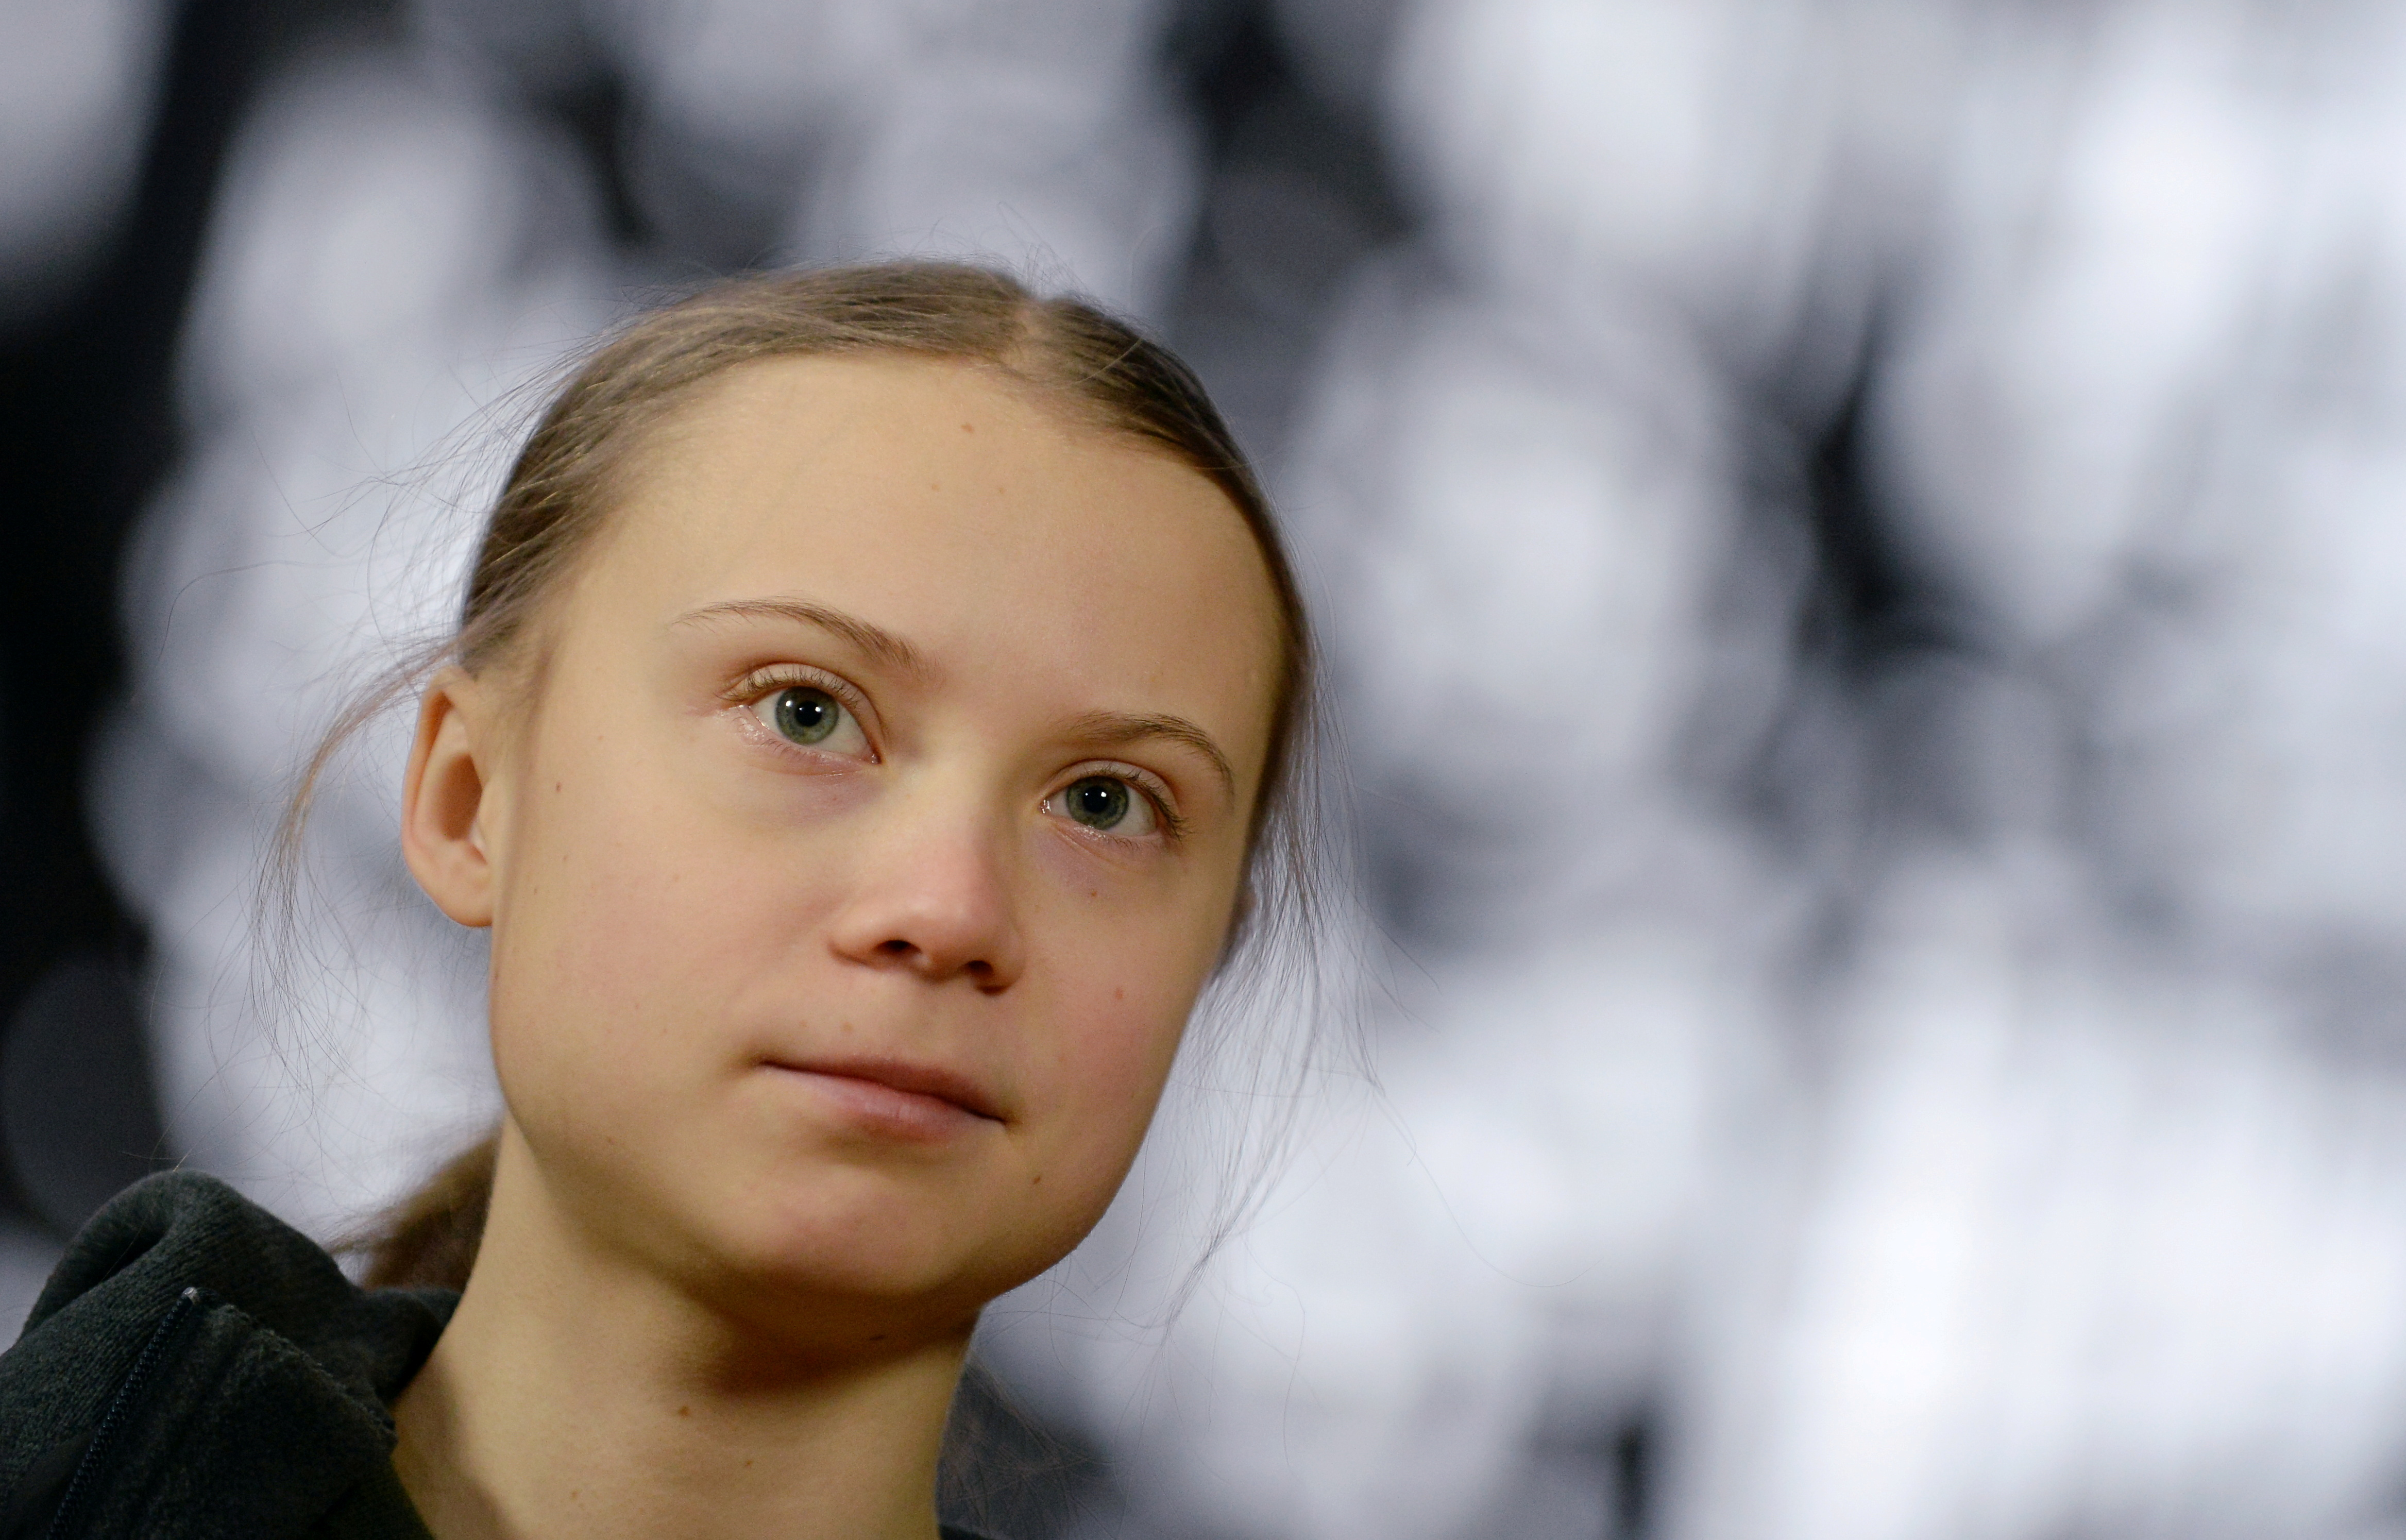 Swedish climate activist Greta Thunberg talks to the media before meeting with EU environment ministers in Brussels, Belgium, March 5, 2020. REUTERS/Johanna Geron